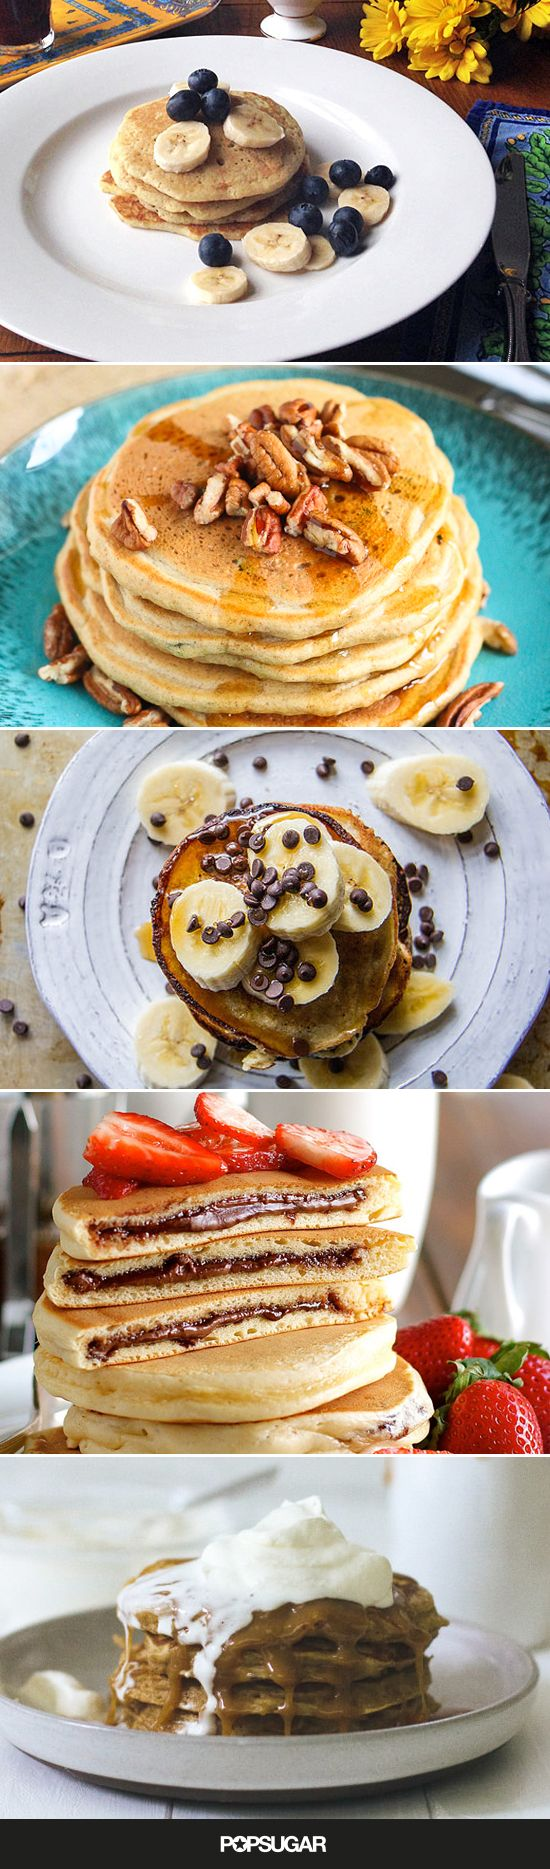 Pick your family's new favorite short stack — there's something here for every pancake lover,